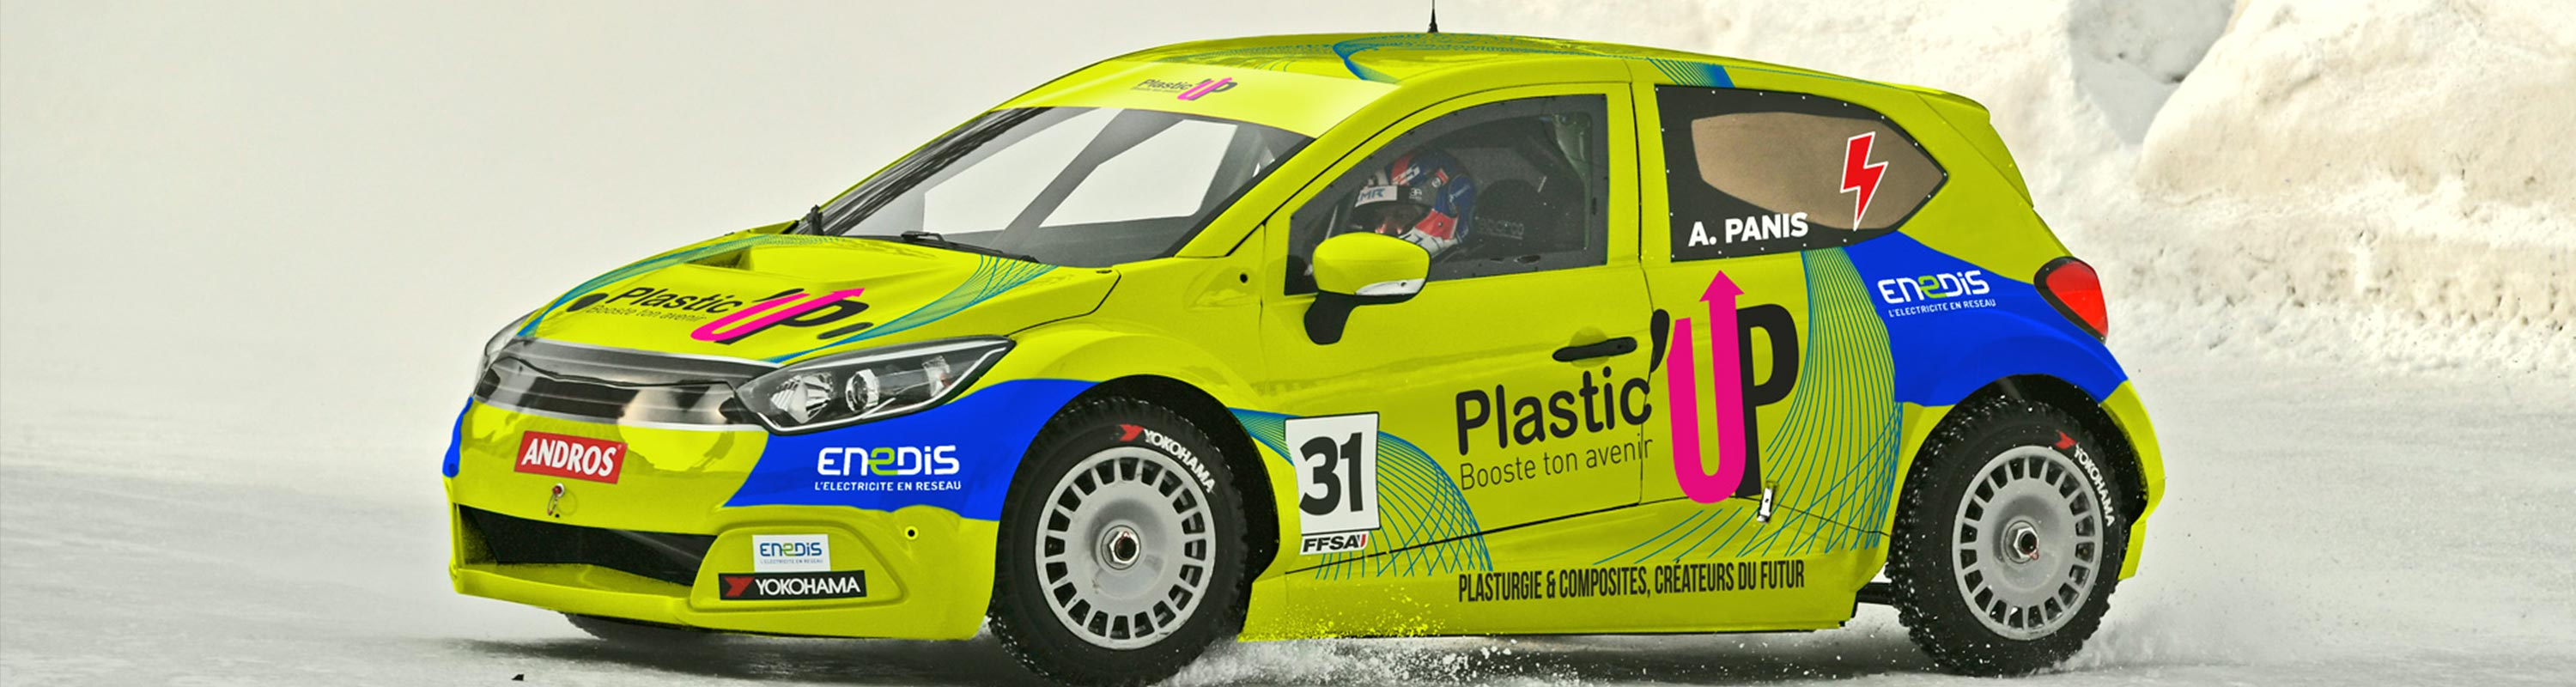 Trophée Andros 2018 : Plastic'Up